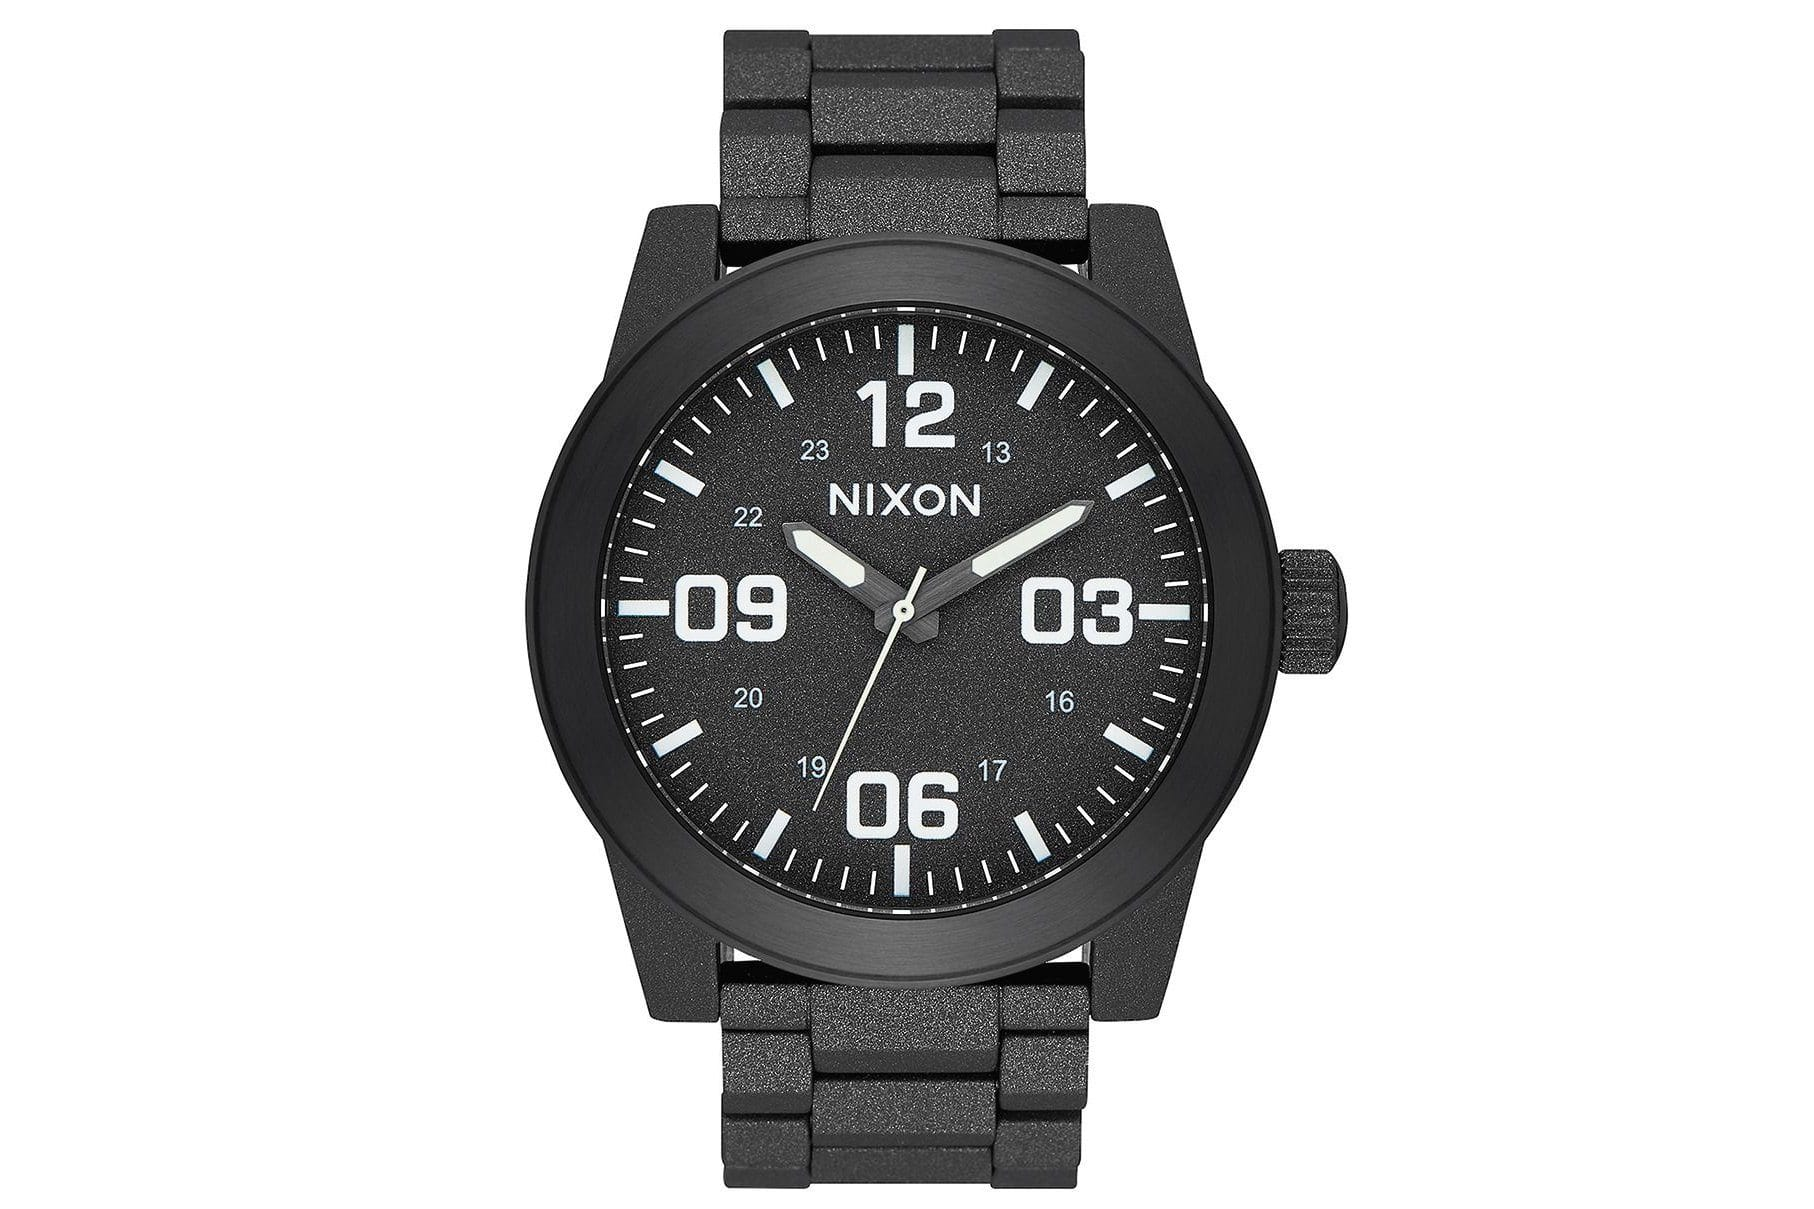 CORPORAL SS - A346-1041 WATCHES NIXON